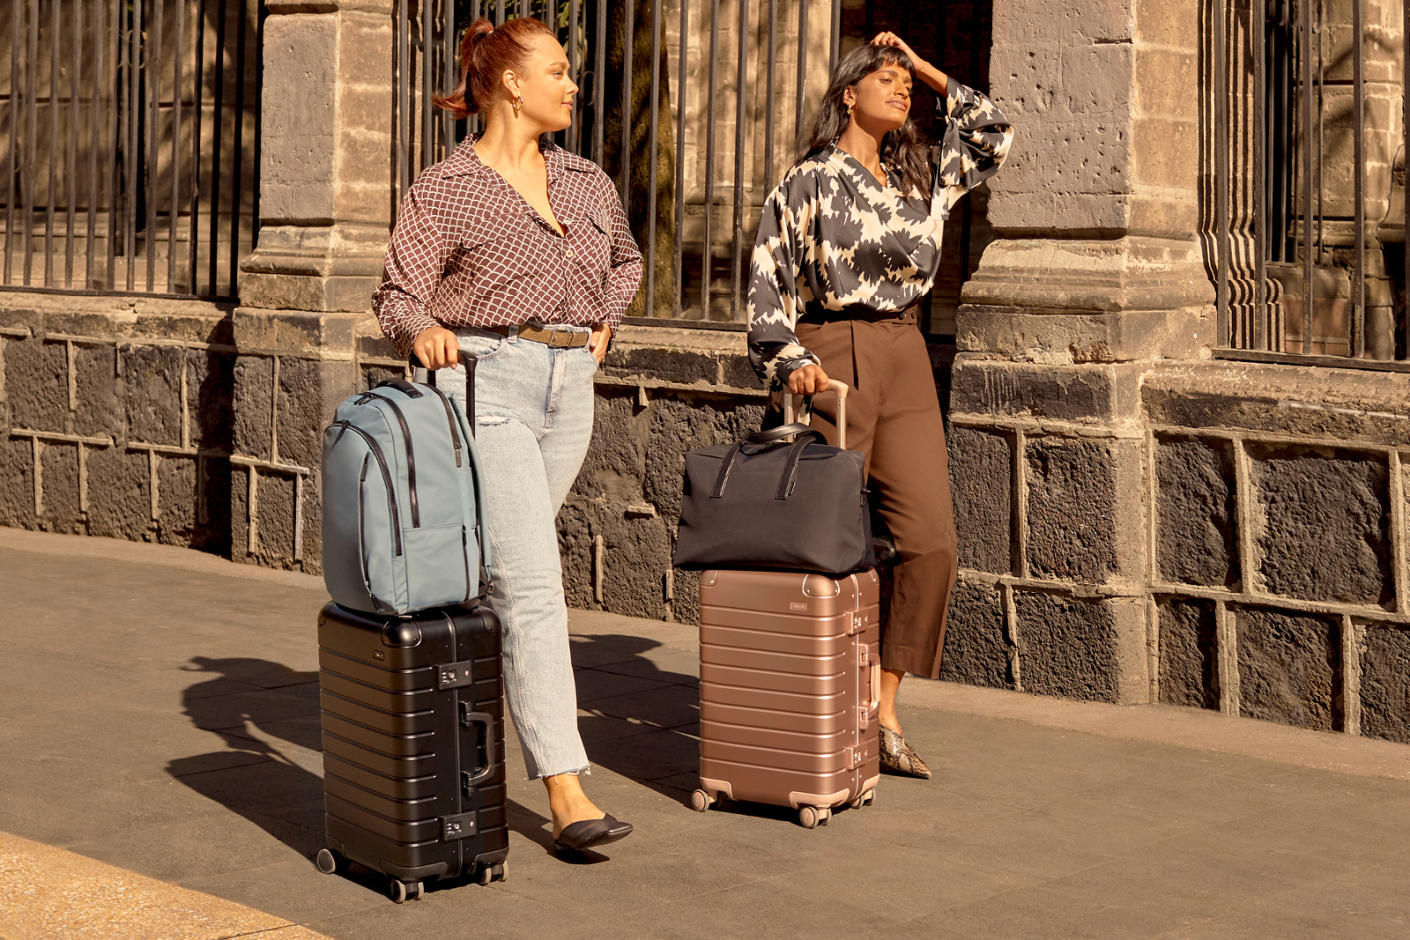 Two women strolling down a street with their travel bags, a backpack and duffle bag paired with aluminum carry-on suitcases.